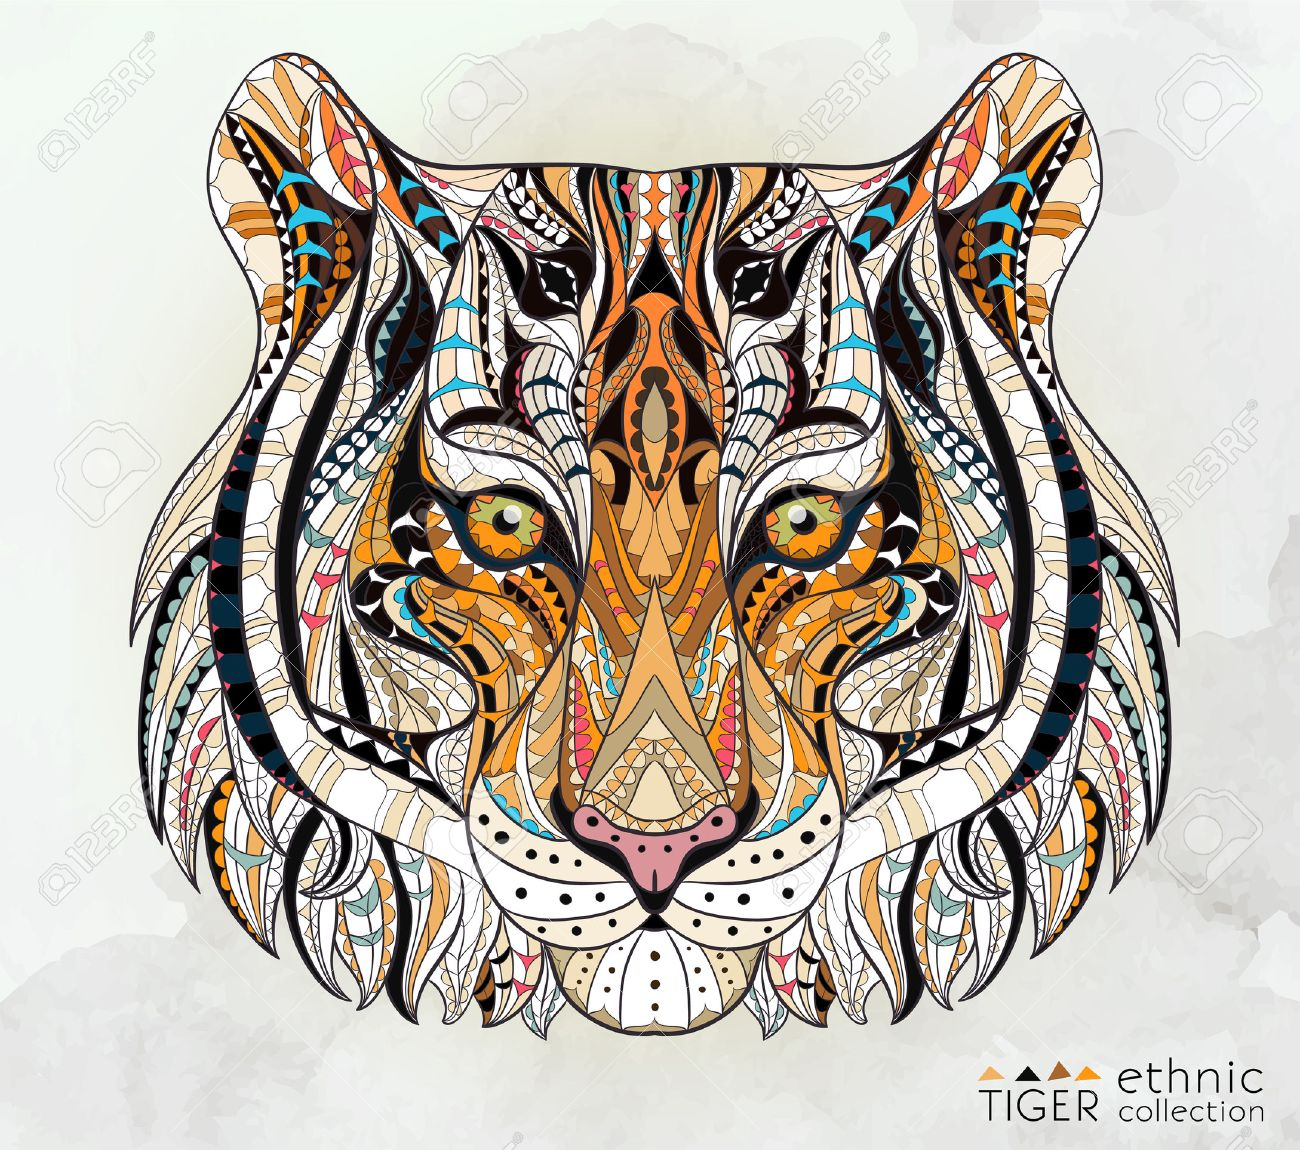 Patterned Head Of The Tiger On The Grunge Background African